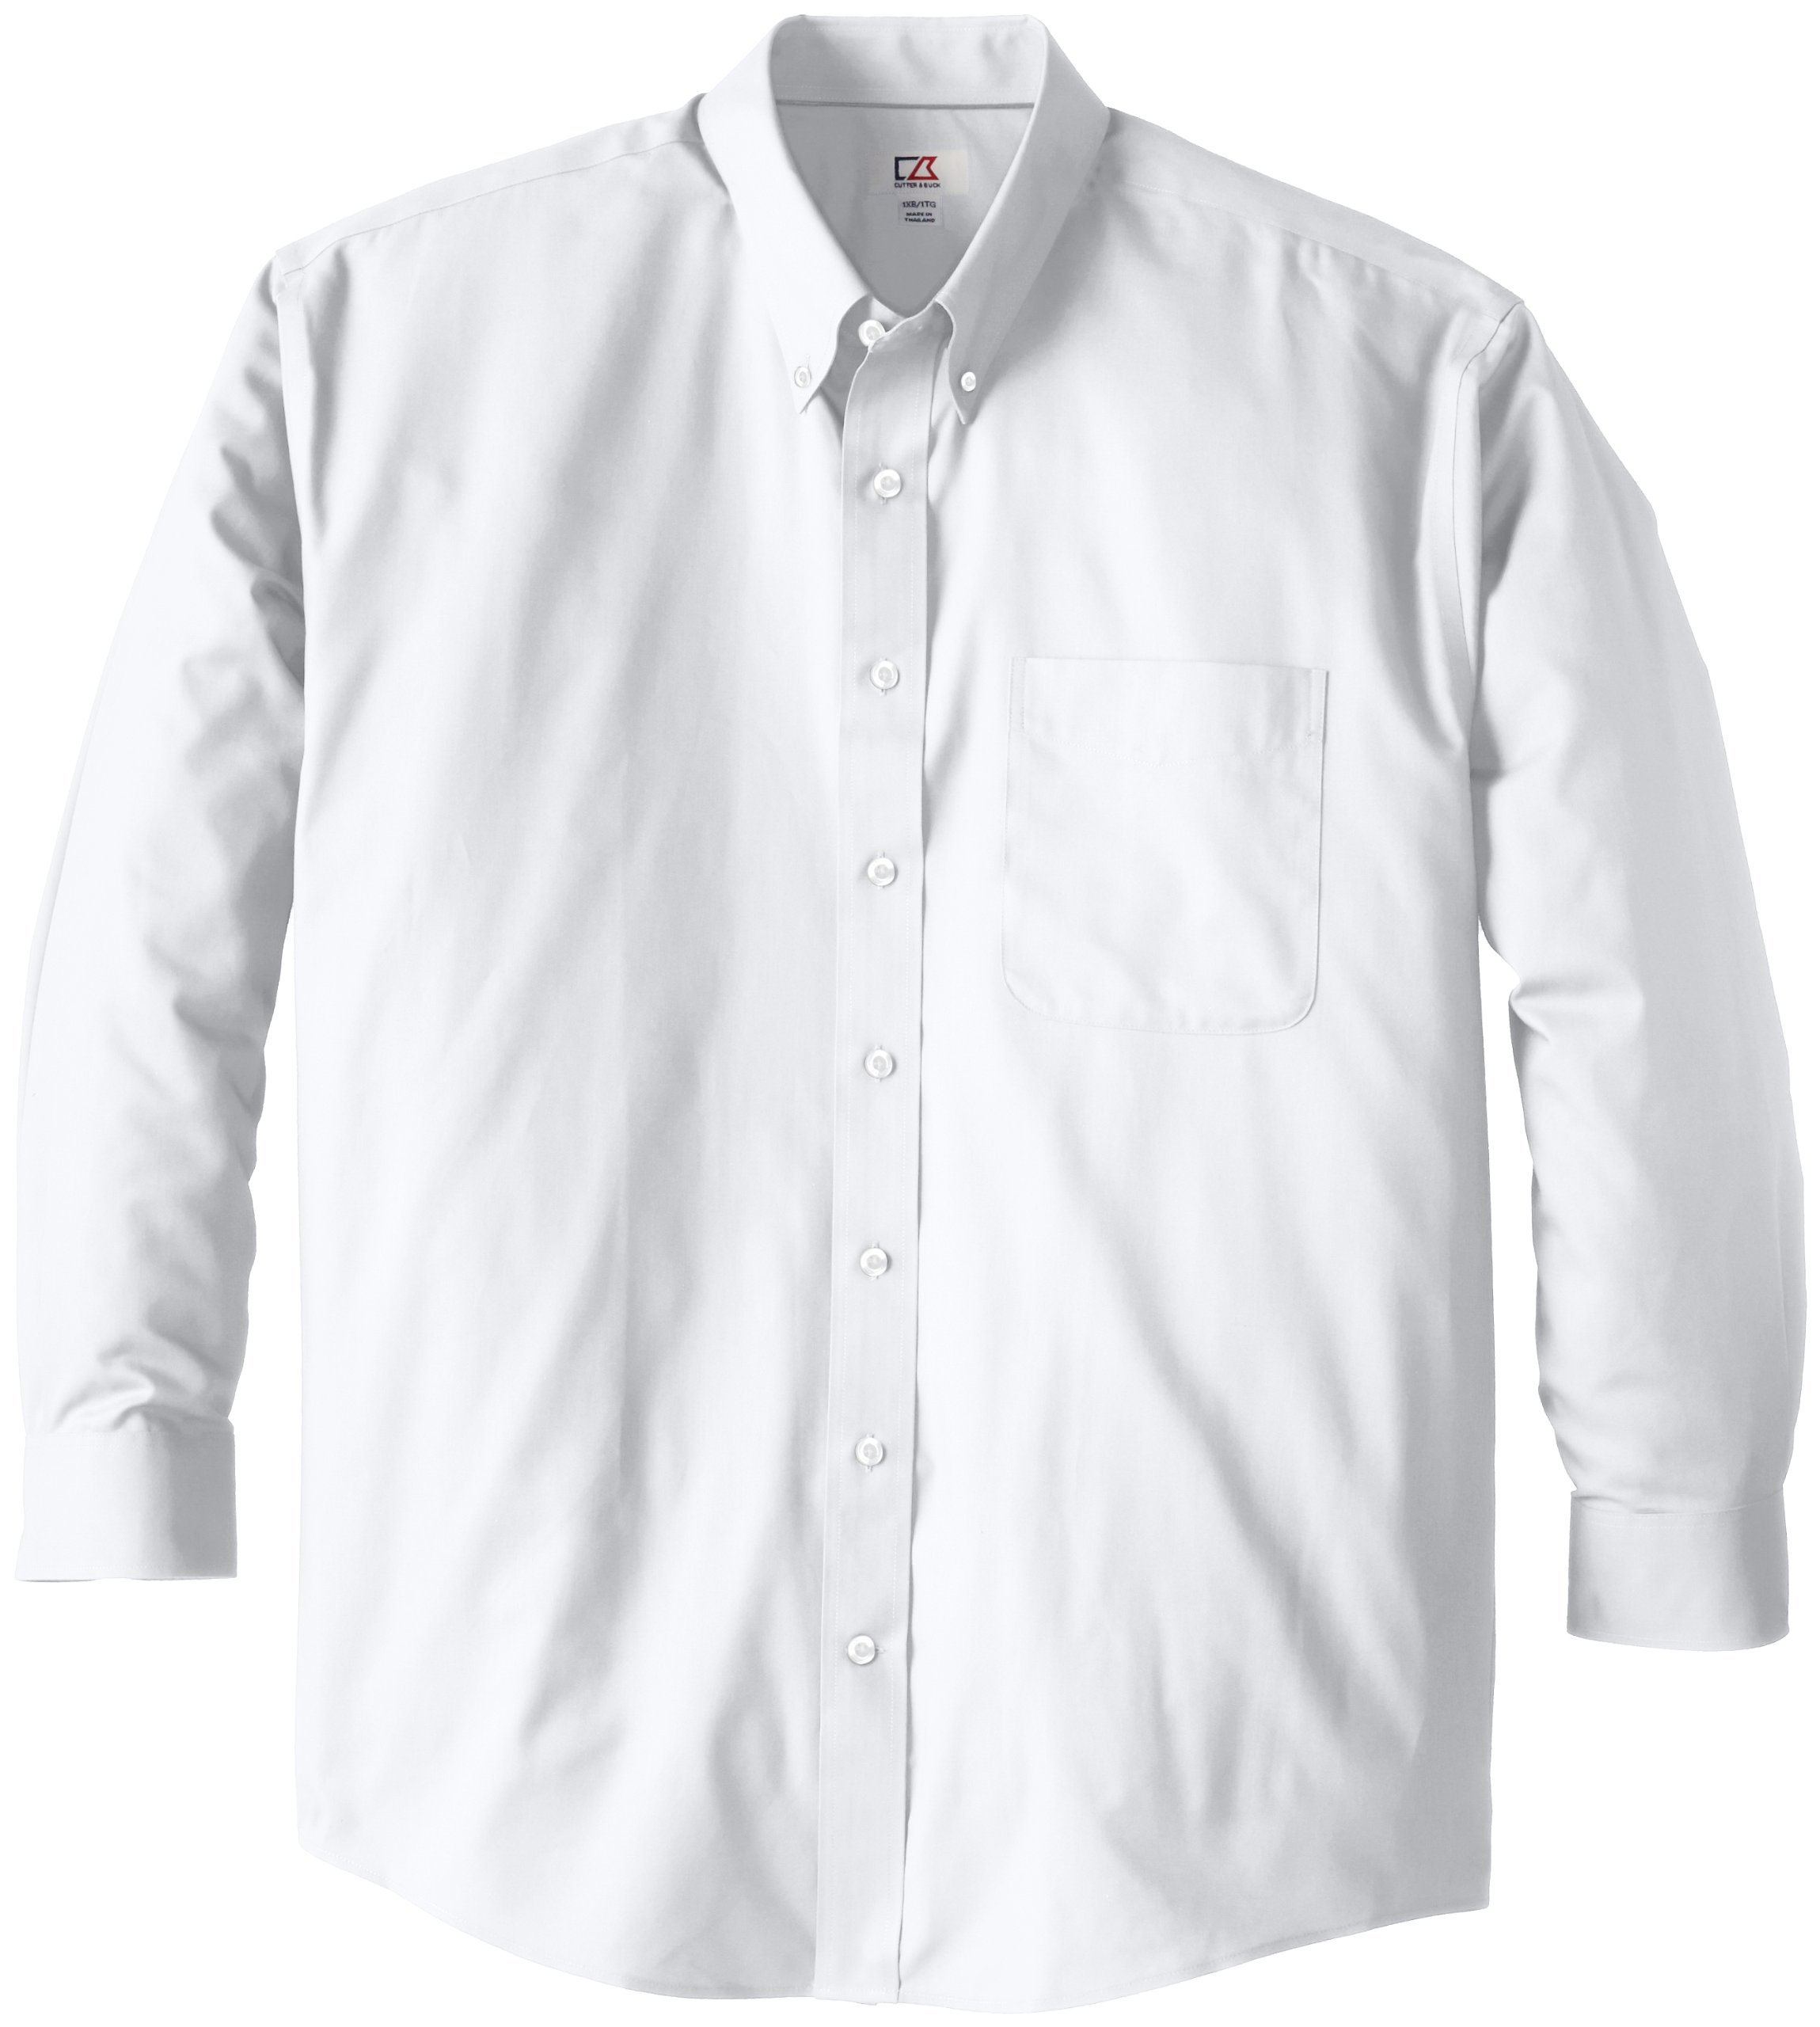 Cutter & Buck Men's Big-Tall Epic Easy Care Fine Twill Shirt, White, 3XT